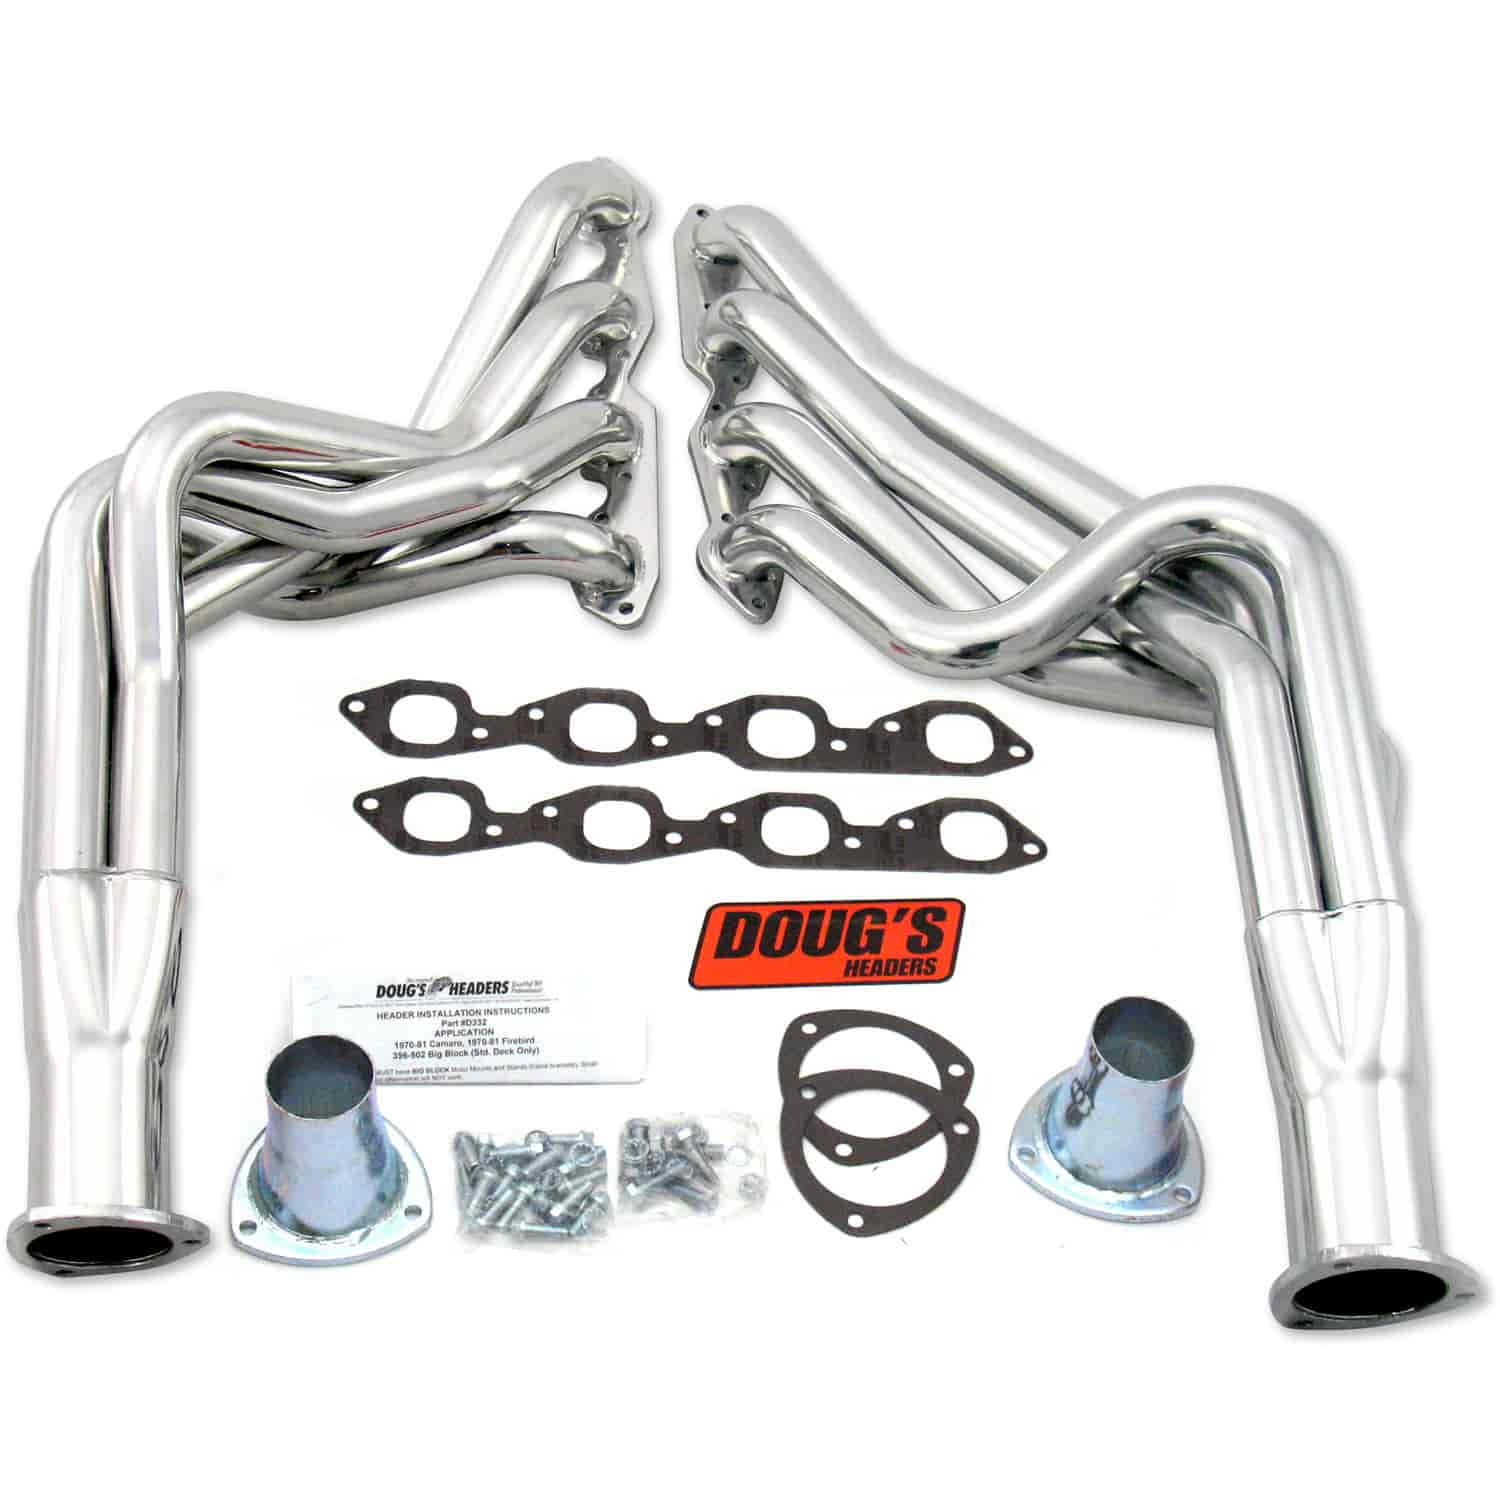 Doug S Headers D325 Metallic Ceramic Coated Headers 74